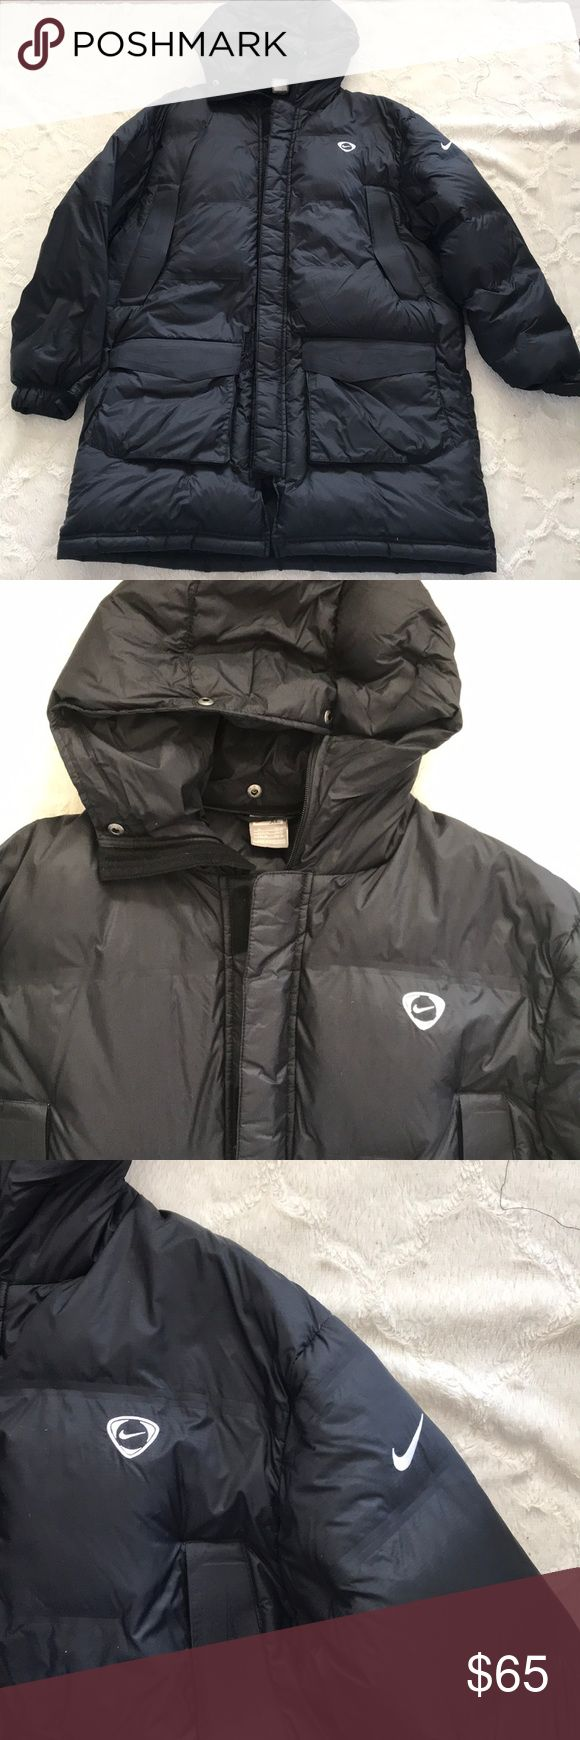 Men's Nike winter jacket Men's Nike winter coat.. great condition! Long! Size XL! Like a Parka. Extremely warm! My husband has worn it only a few times. Nike Jackets & Coats